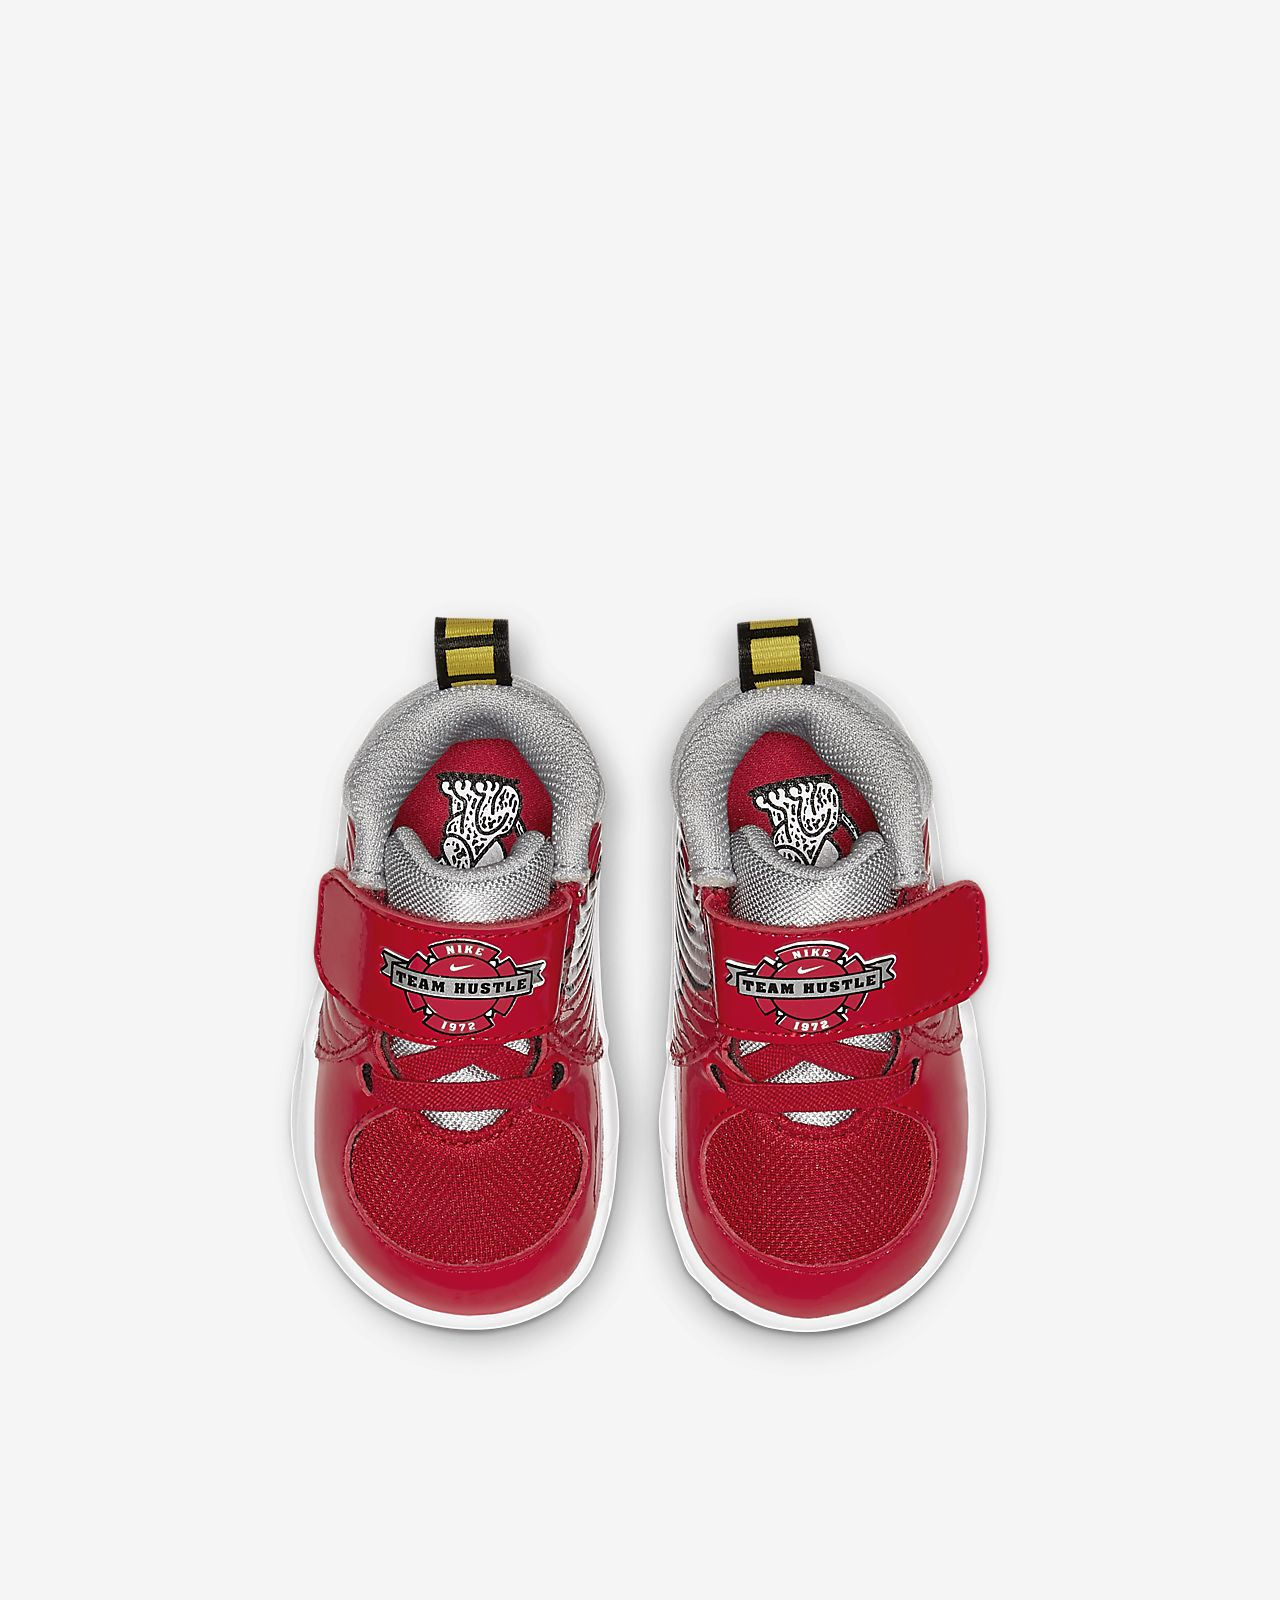 Nike Team Hustle D 9 BabyToddler Shoe